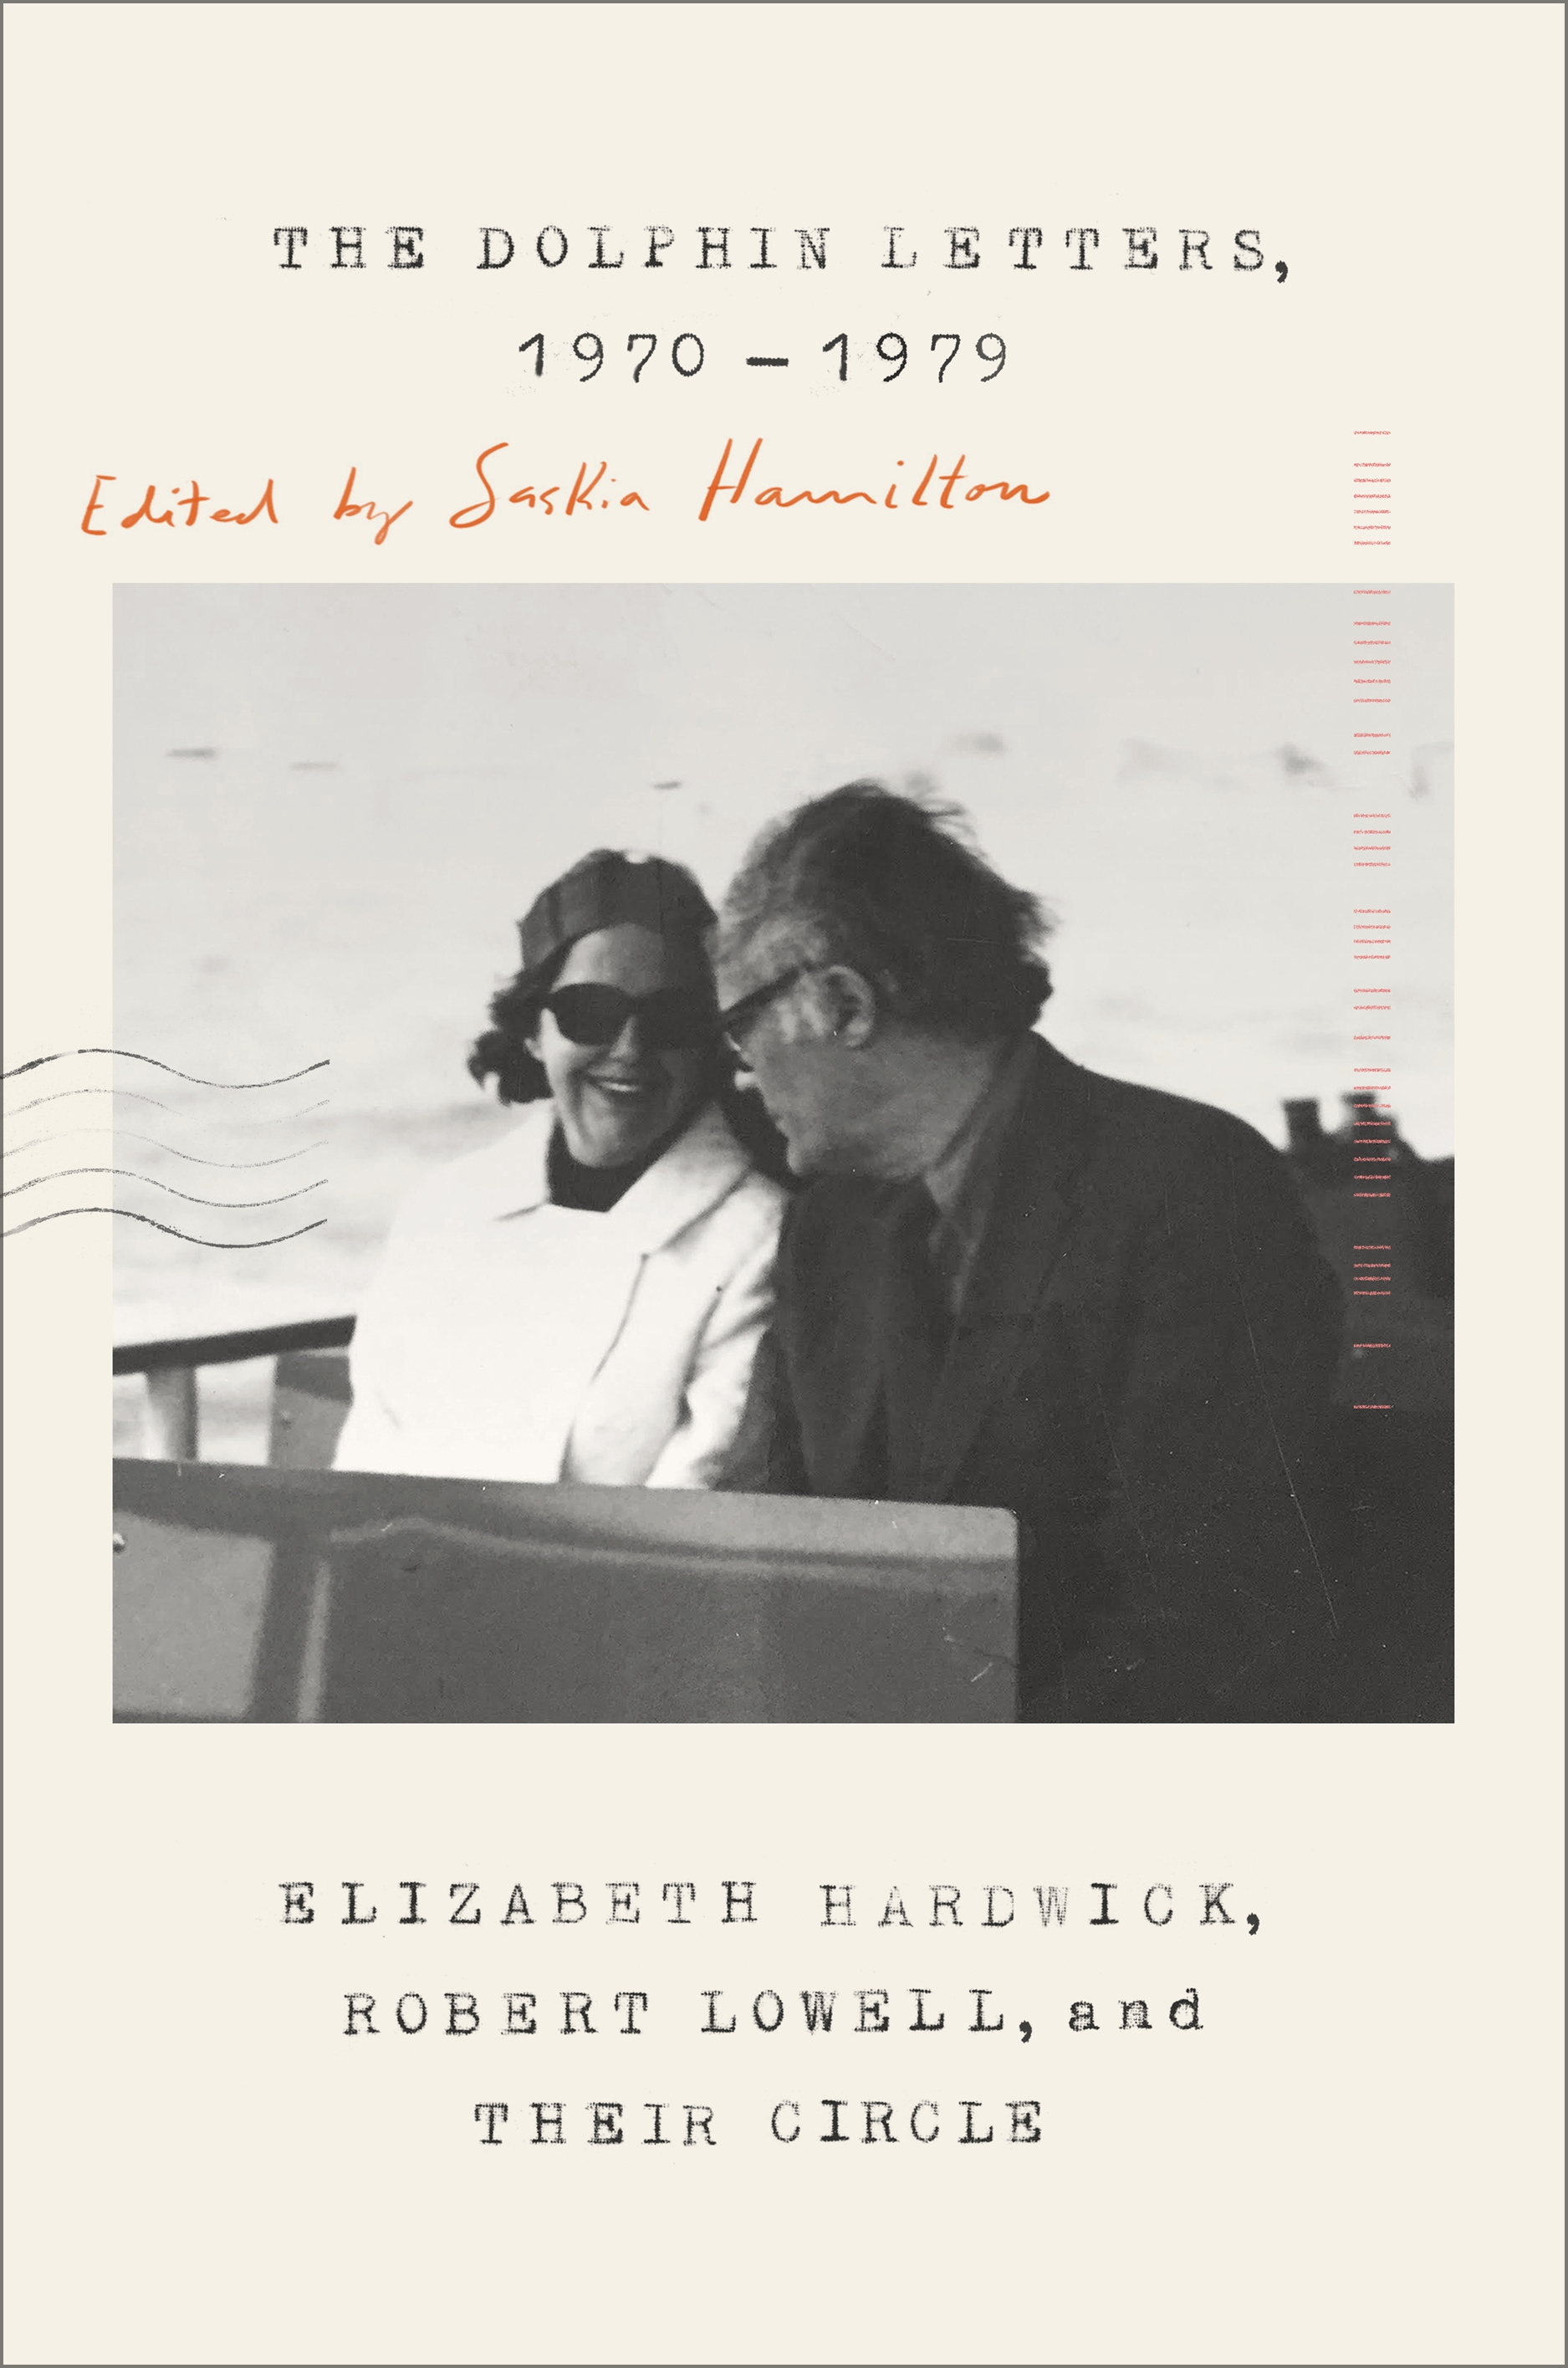 The Dolphin Letters, 1970-1979 Elizabeth Hardwick, Robert Lowell, and Their Circle